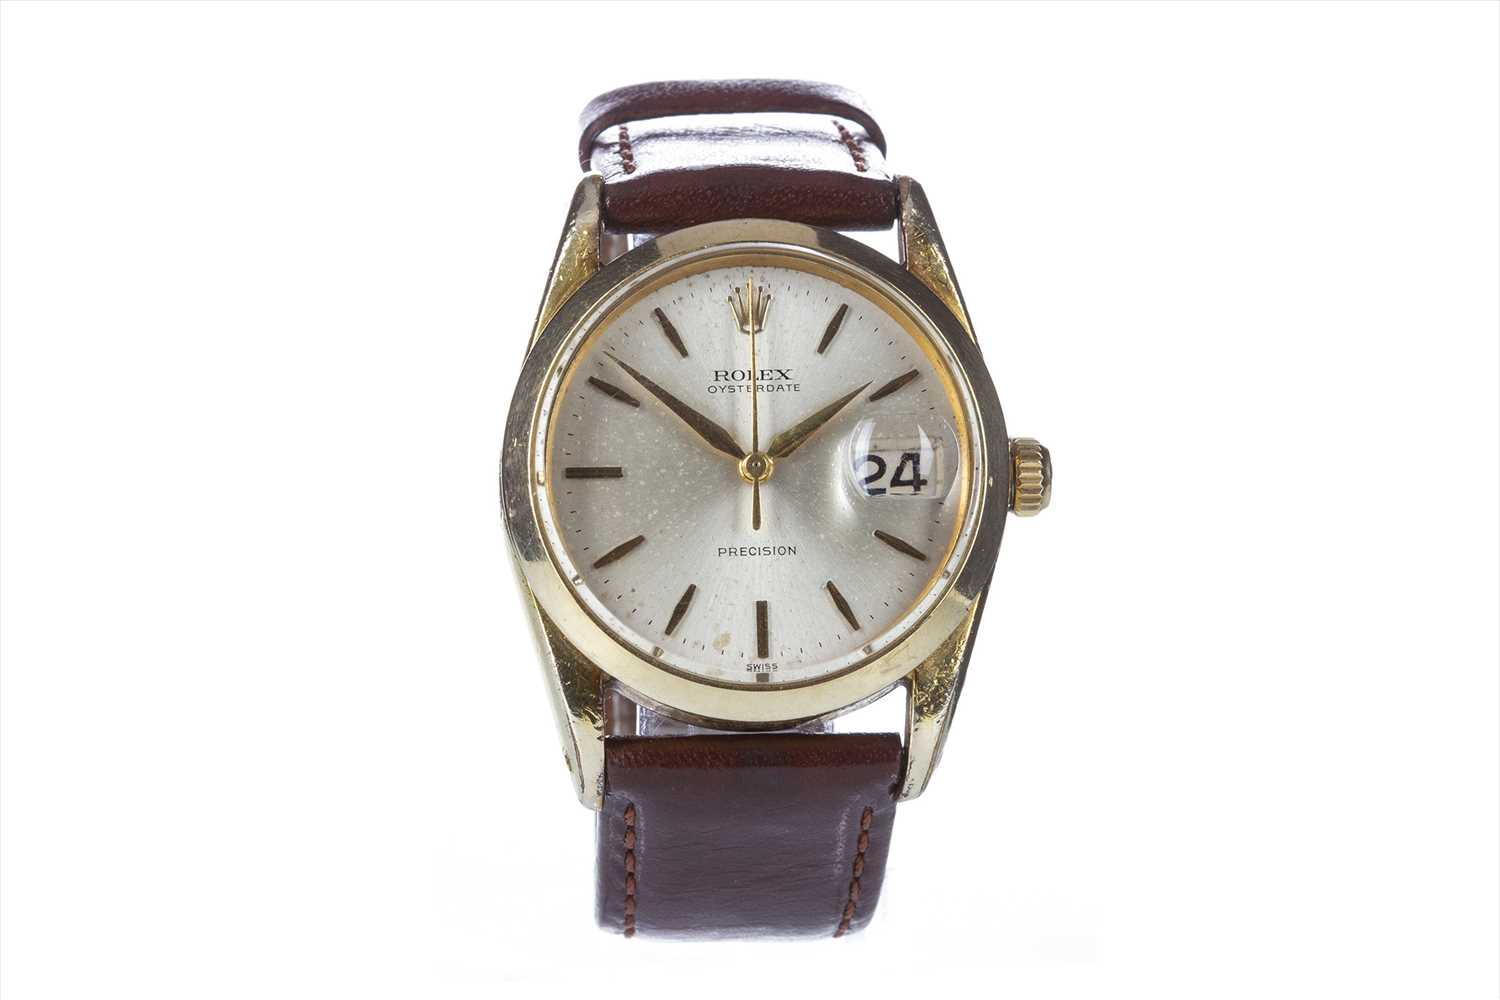 Lot 770-A GENTLEMAN'S ROLEX OYSTERDATE PRECISION WATCH